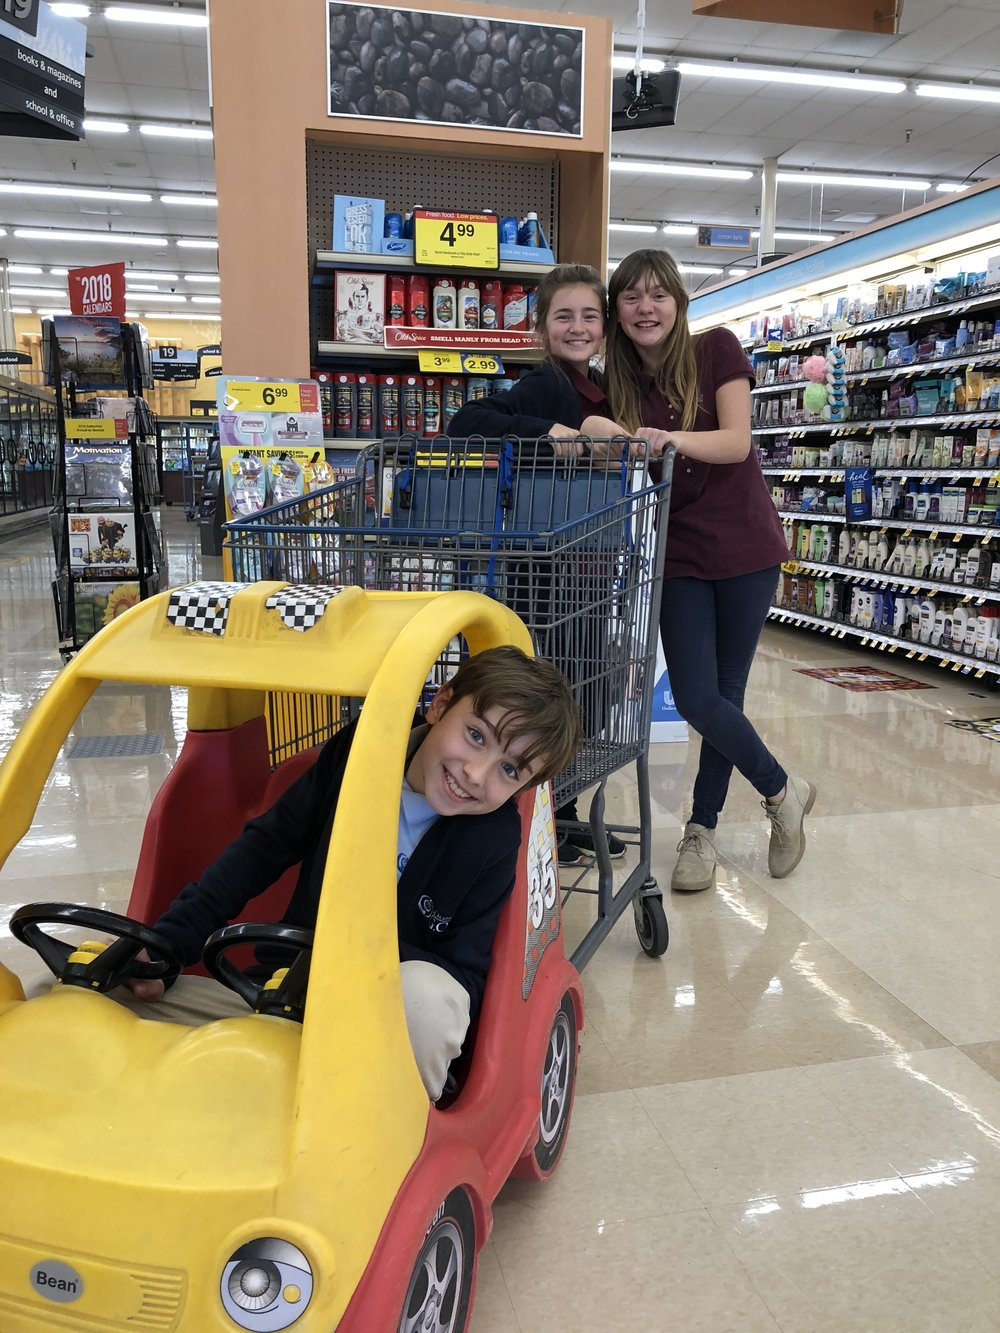 Charlie Meadows, Moriah Olson, and Kiah Roufs all turned in tokens for a Kroger shopping spree. It was pretty funny watching them skip around and talking about what they were getting.